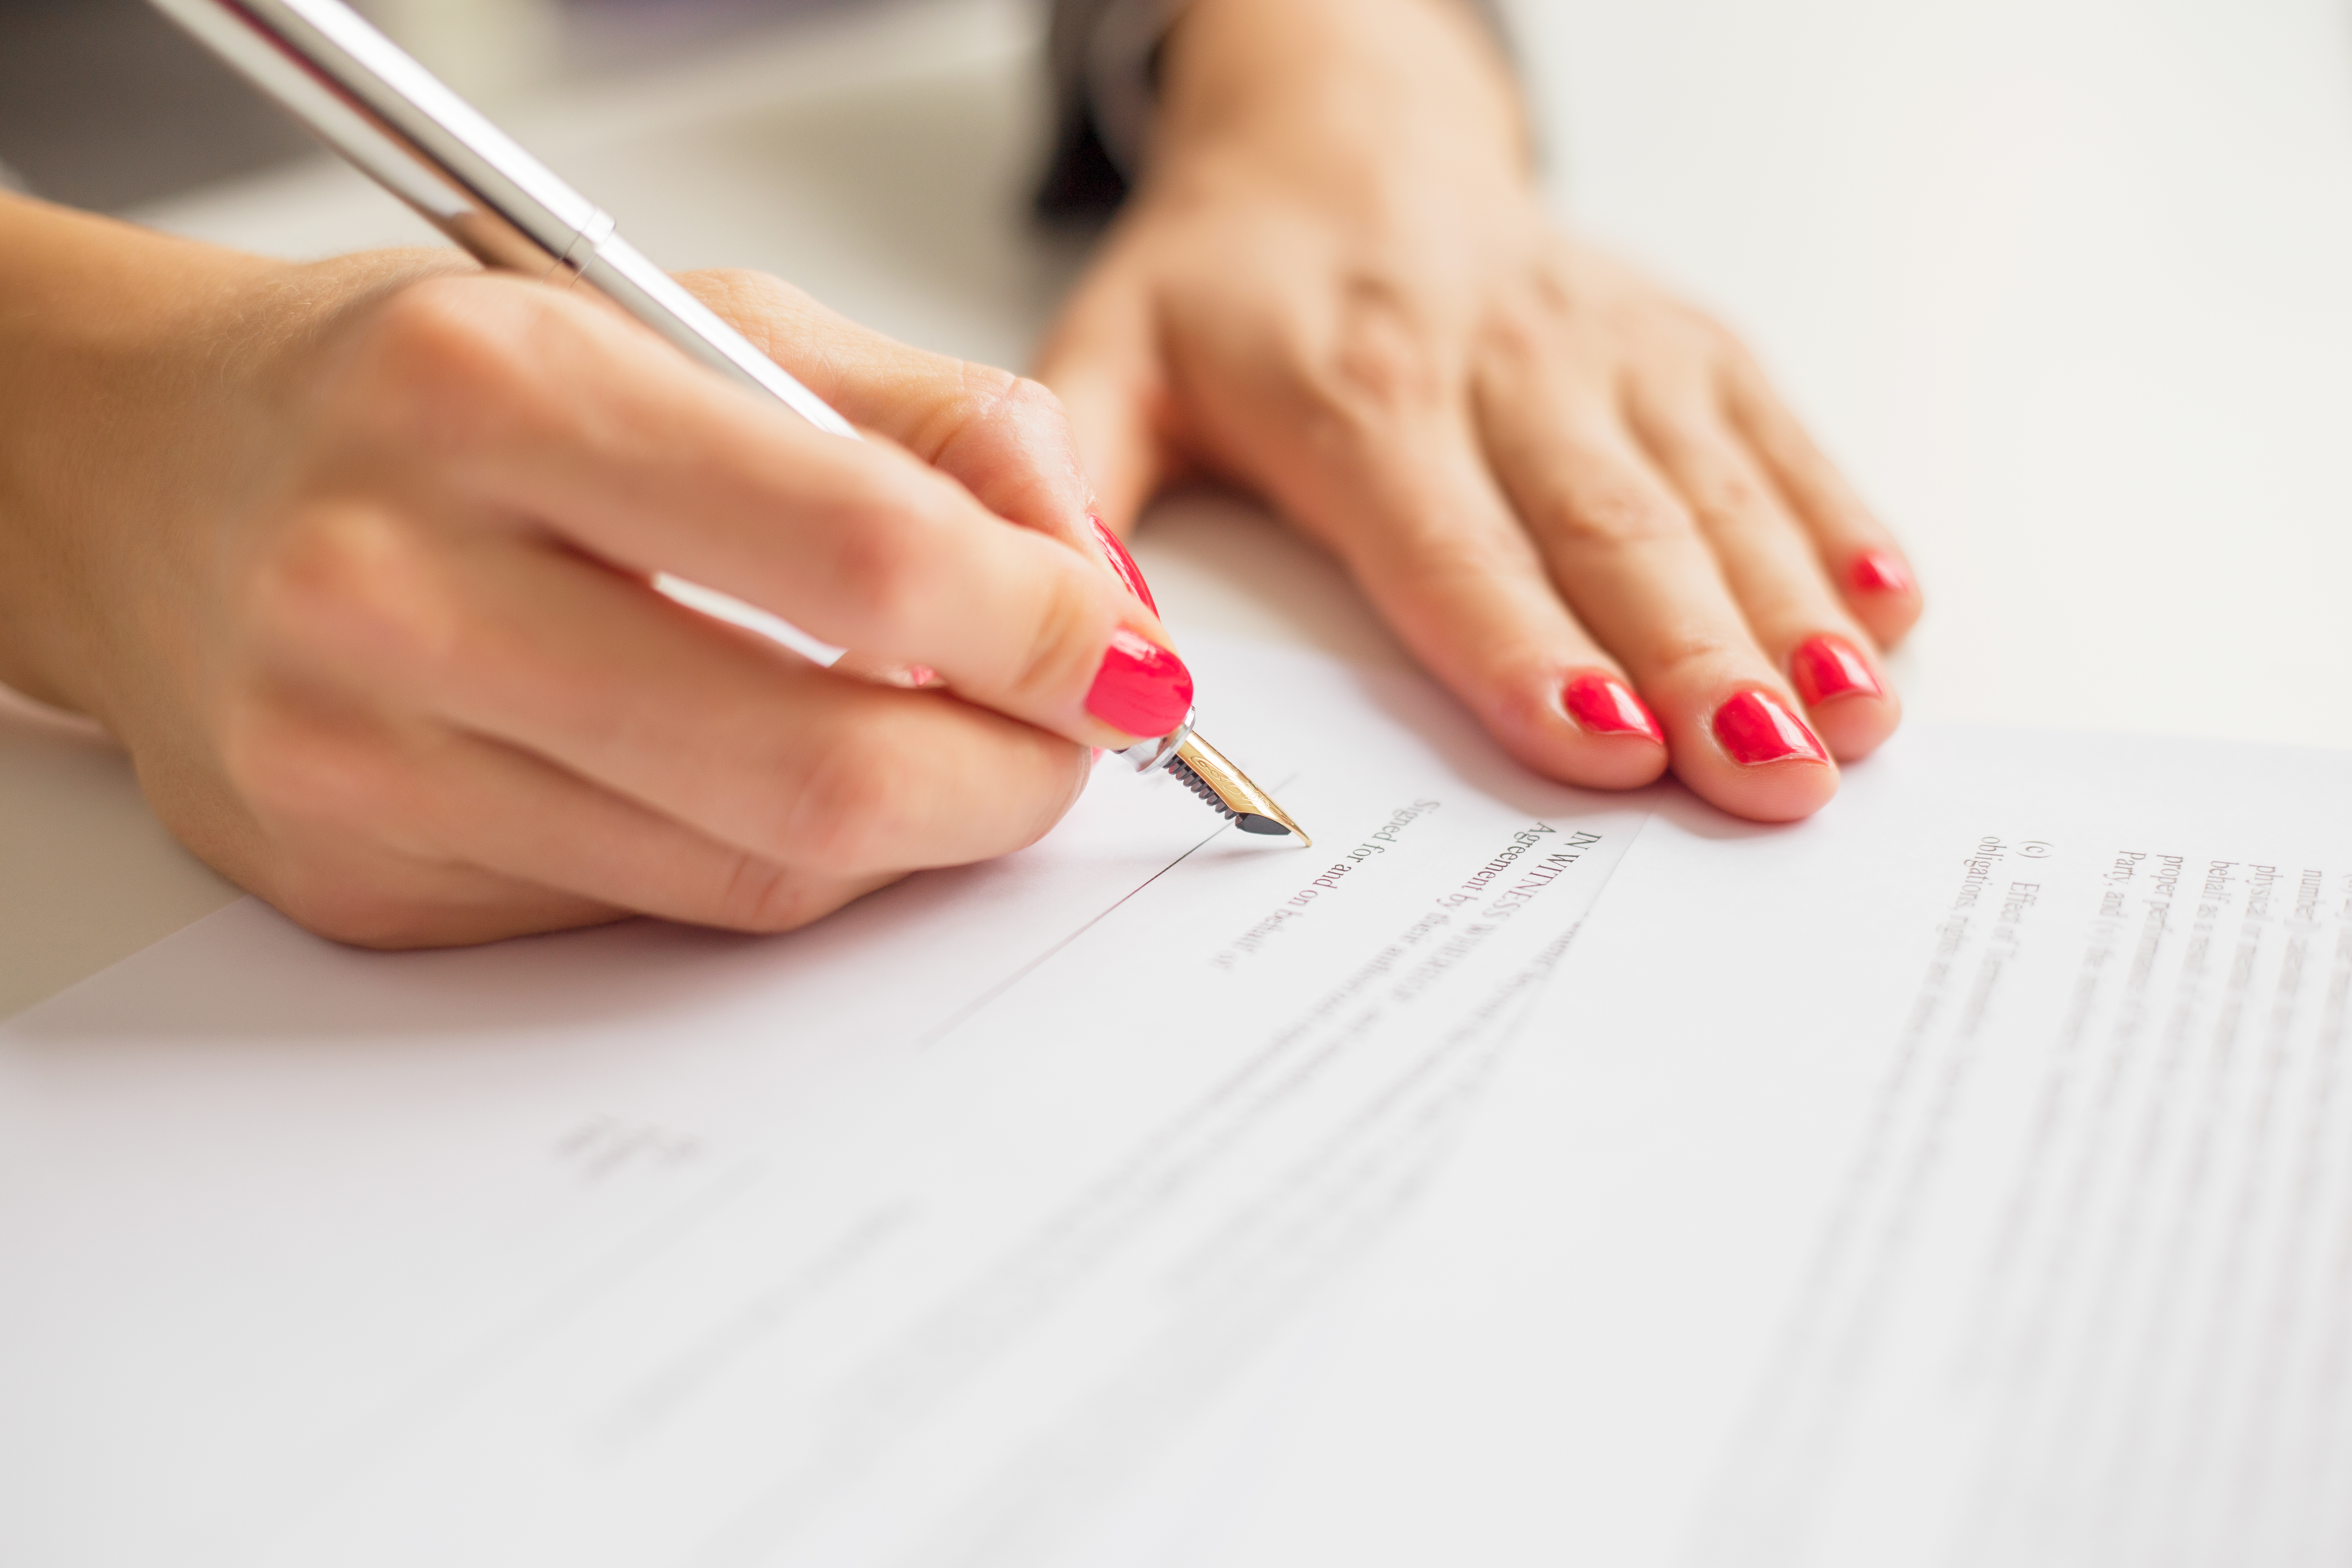 How to Write a Letter for the Early Release From Probation